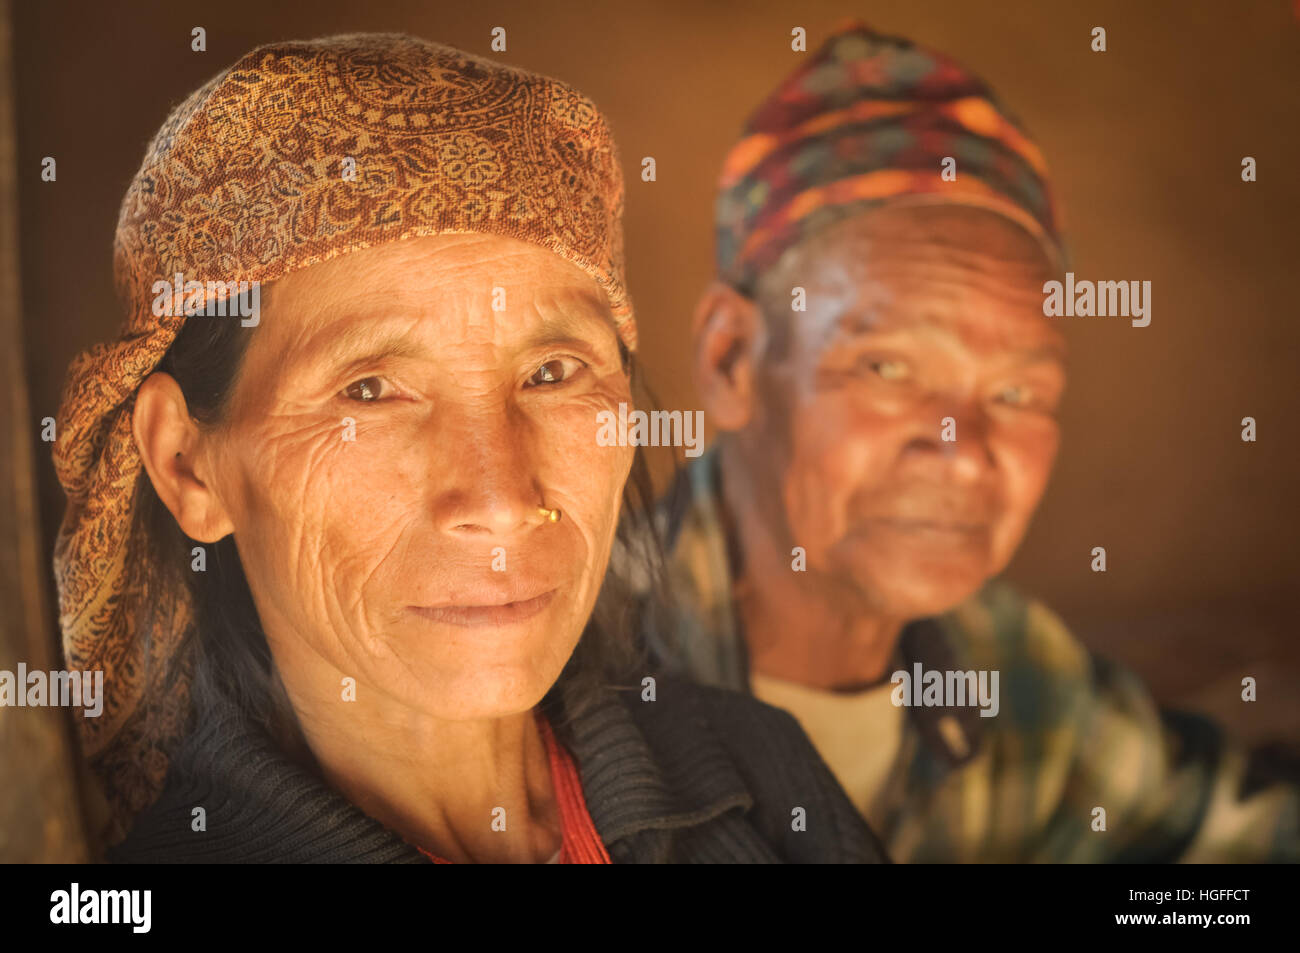 Beni, Nepal - circa May 2012: Native woman with headcloth and piercing in her nose with her husband in background Stock Photo